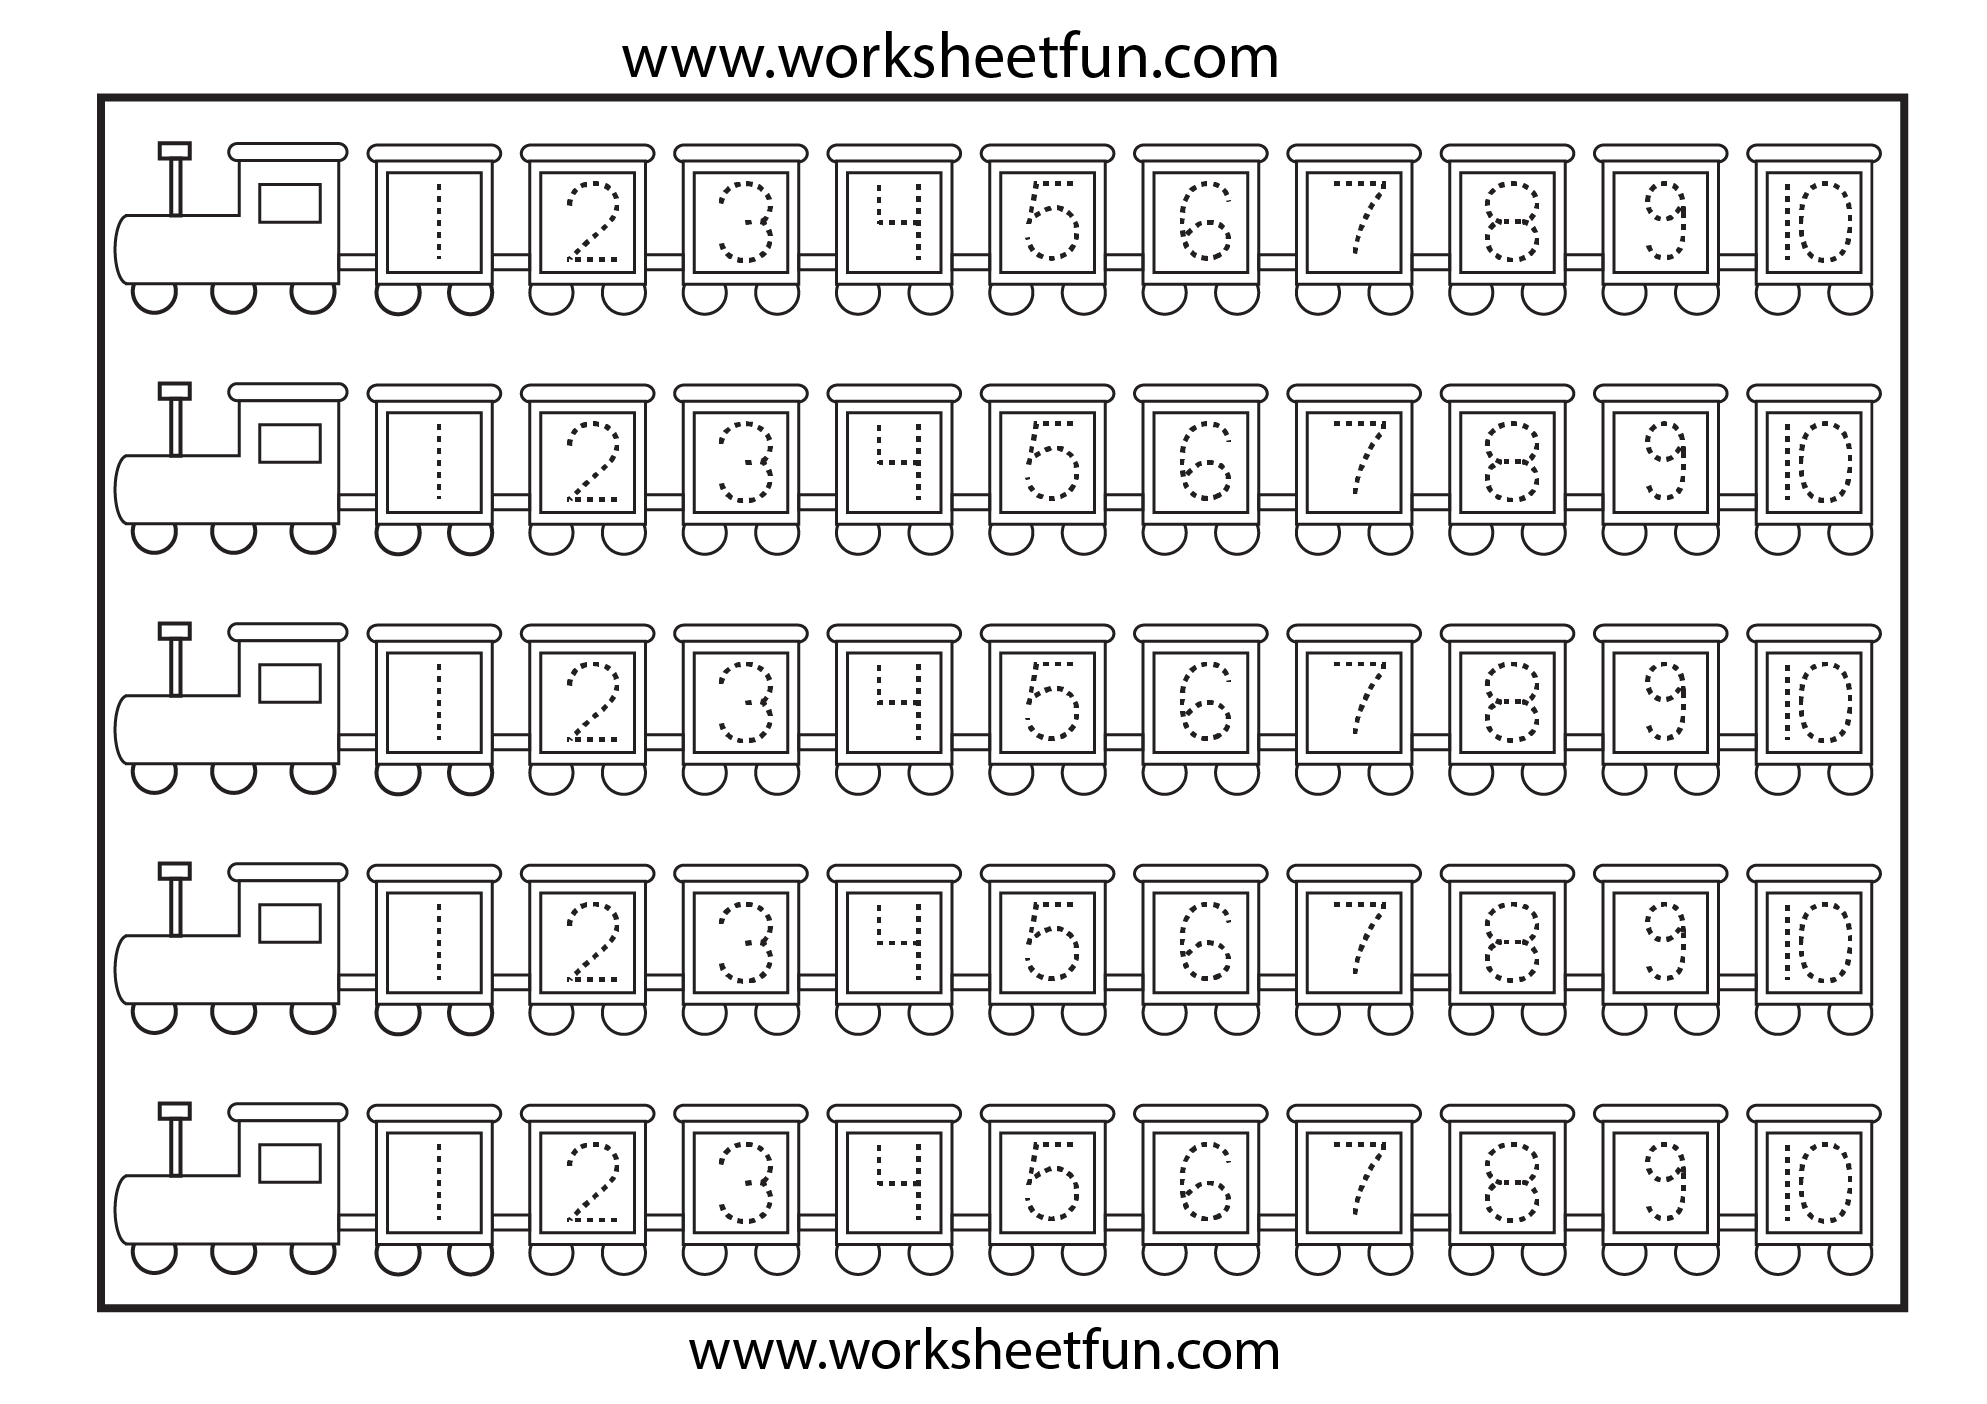 New 944 Counting Objects Worksheets 1 50